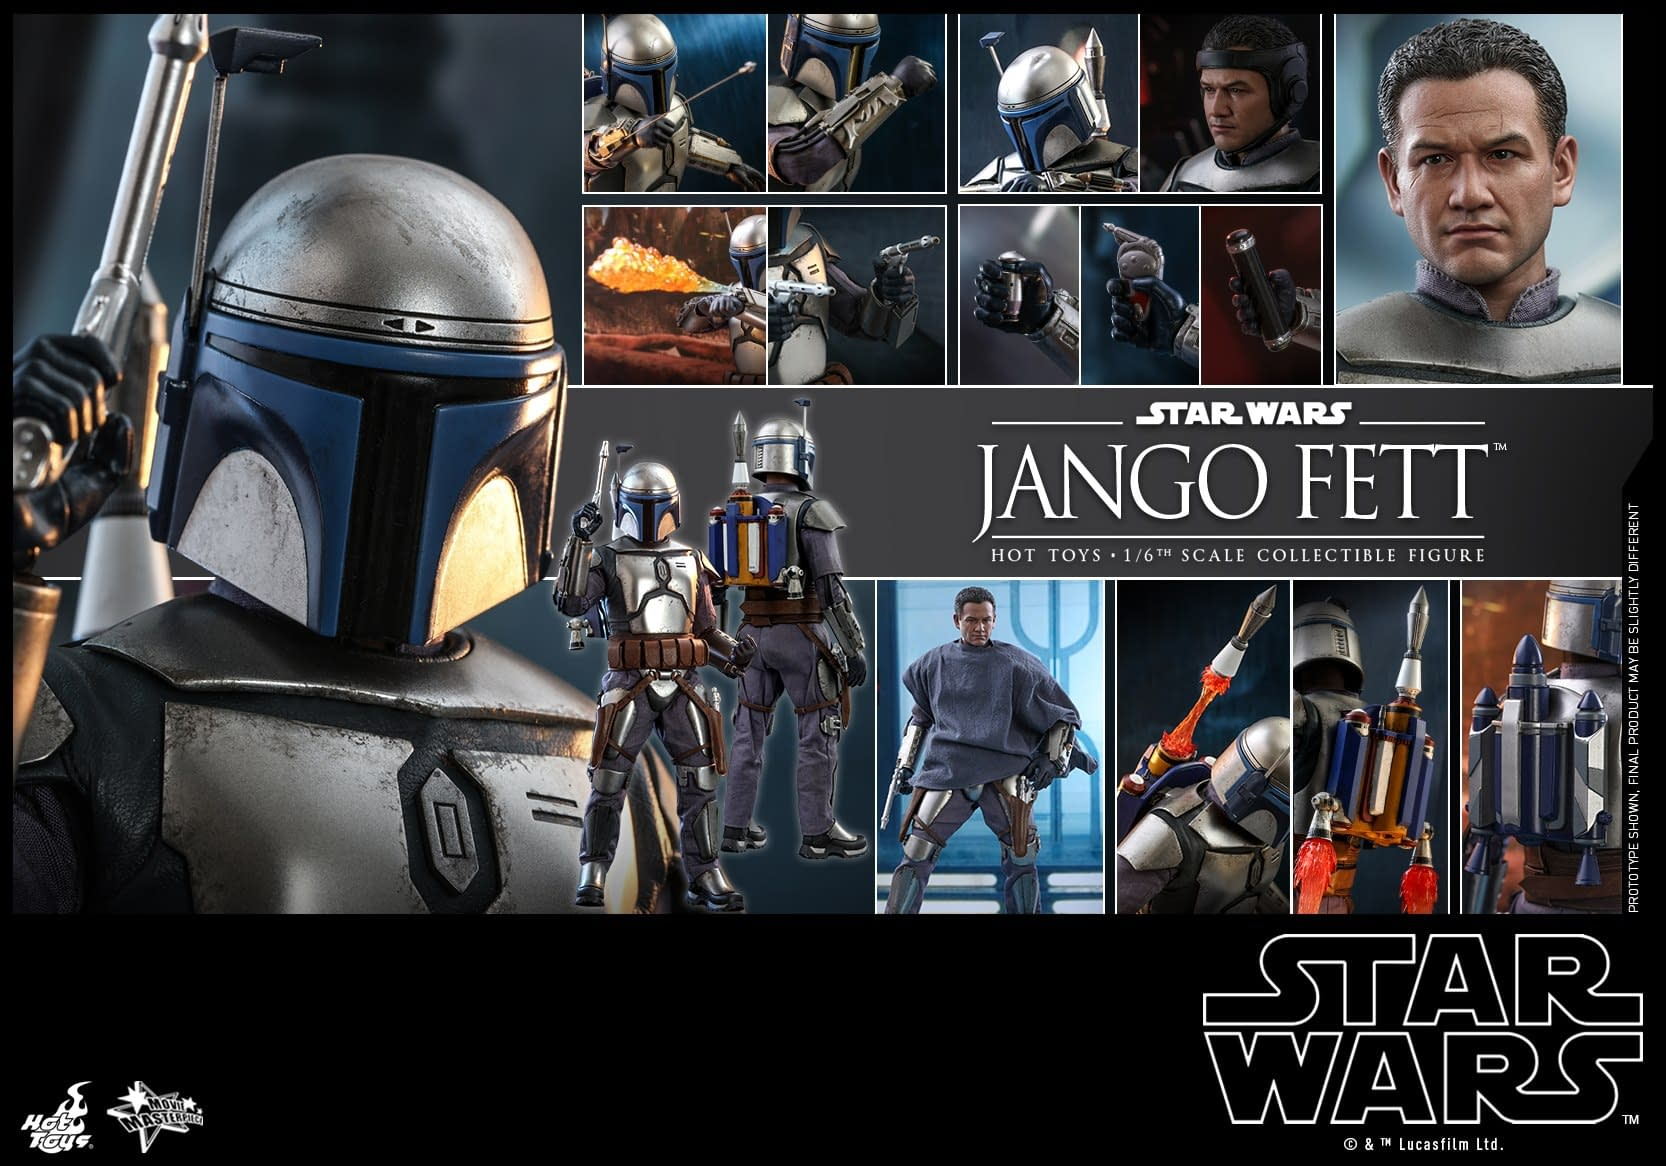 Star Wars Jango Fett Arrives at Hot Toys with New Figure